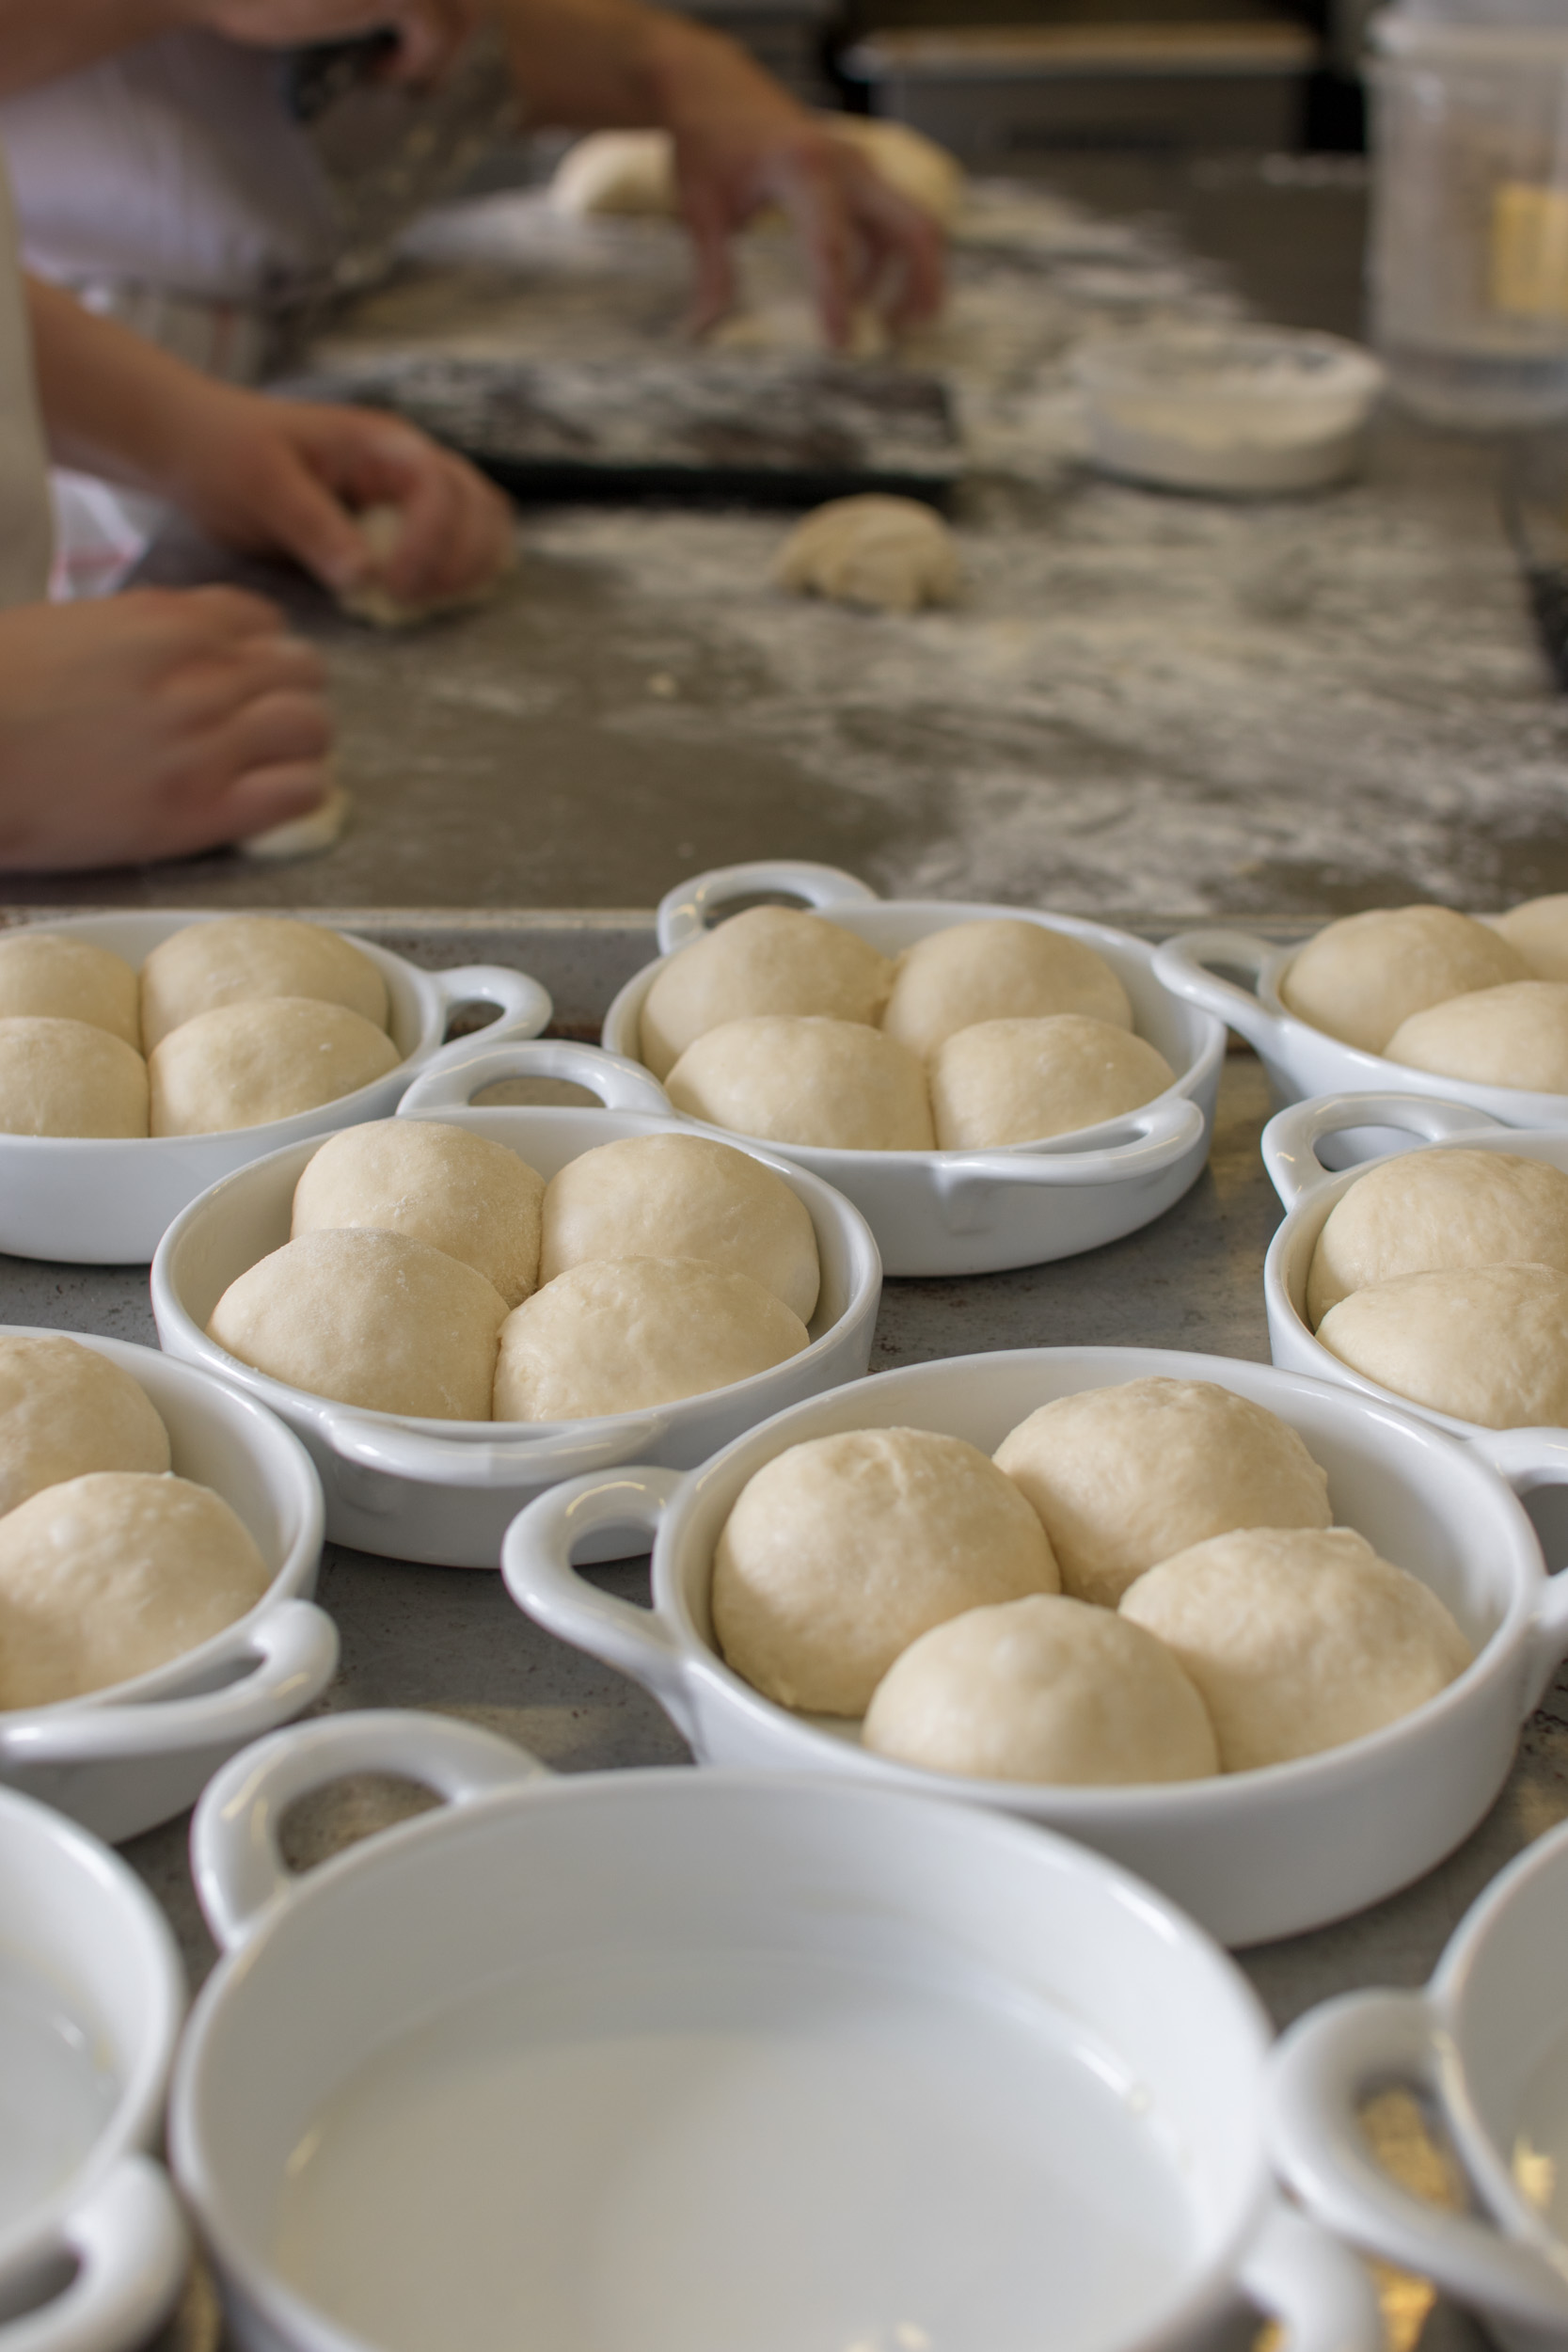 Clover rolls before the oven | Photo by Stephanie Cornell